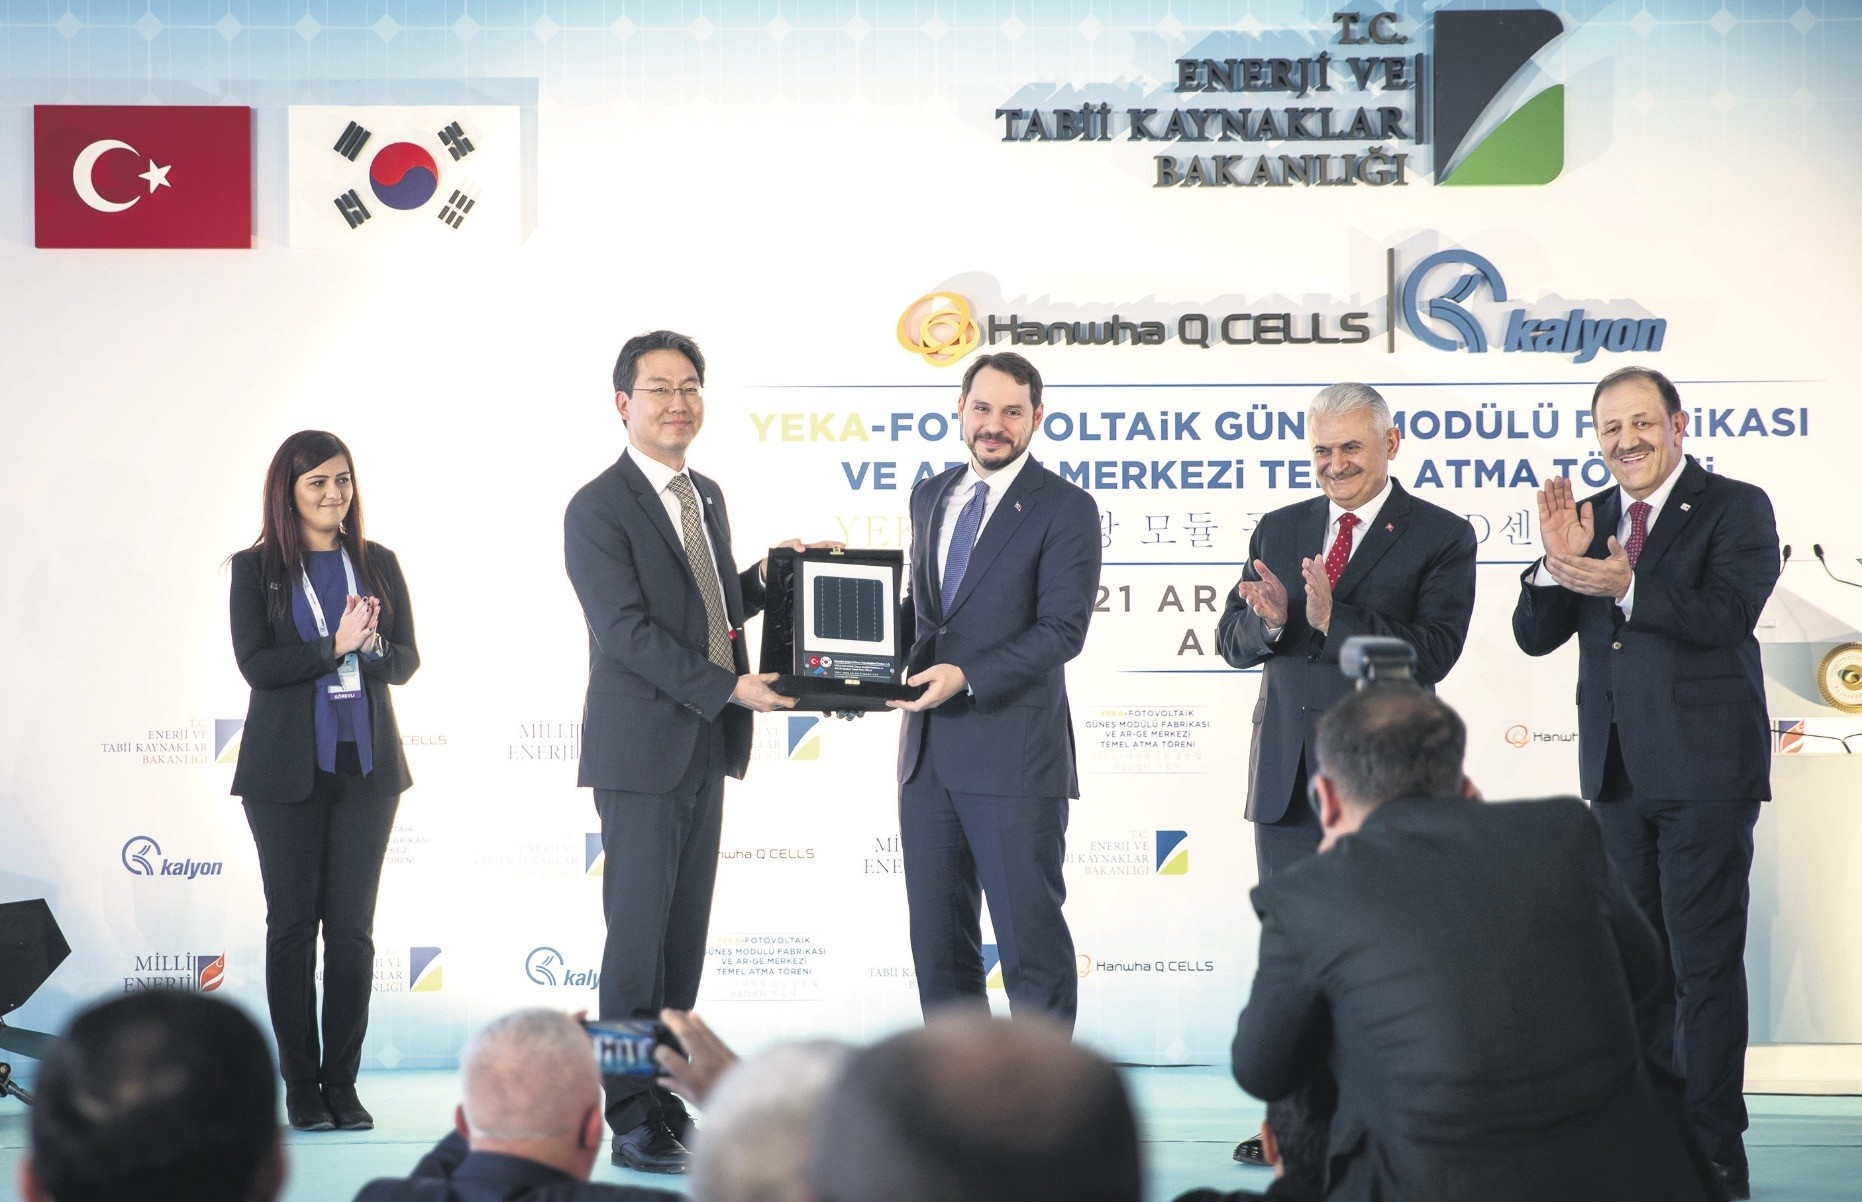 Hanwha Q Cells Vice Chairman Ho Woo Shin (L) presents Energy Minister Albayrak (R) with a solar panel cell plaquette during ground-breaking ceremony, Ankara, Dec. 21.